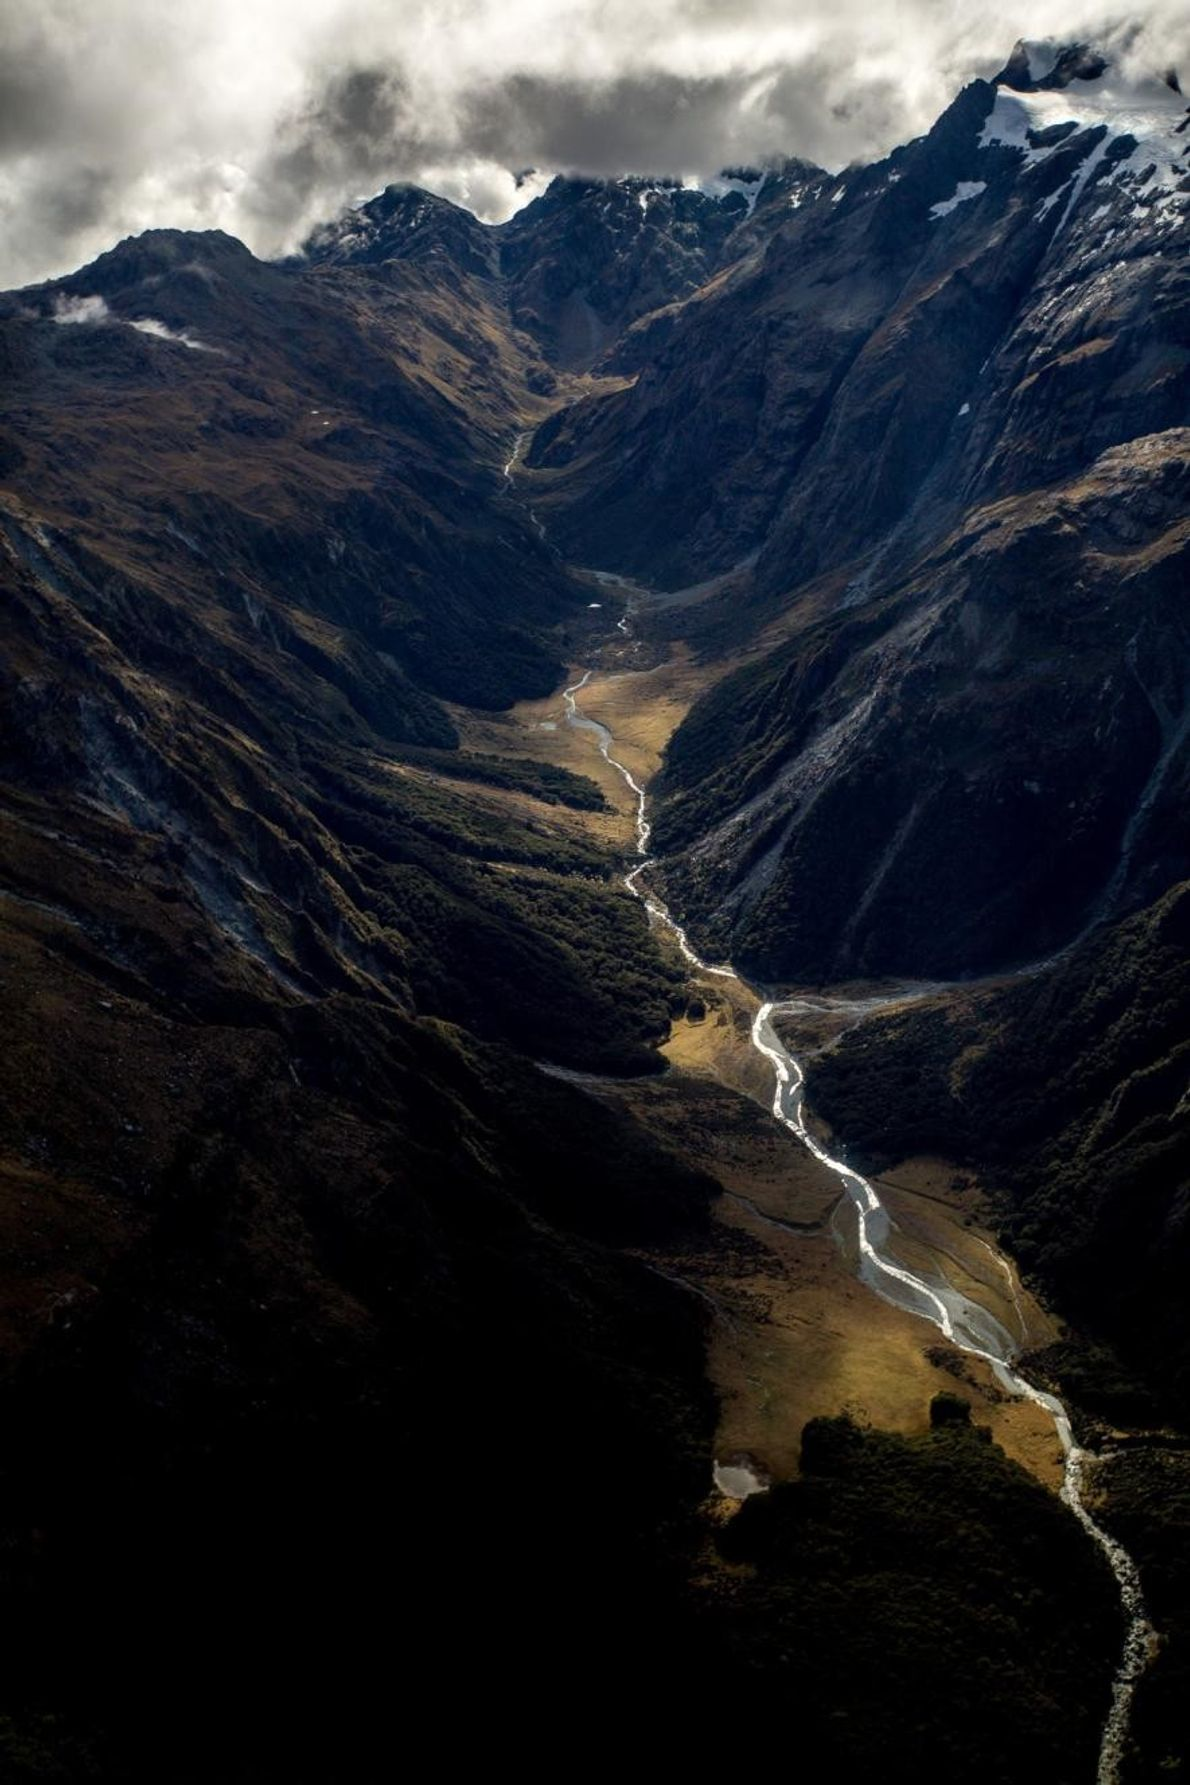 JEN O'NEILL, NATIONAL GEOGRAPHIC YOUR SHOT